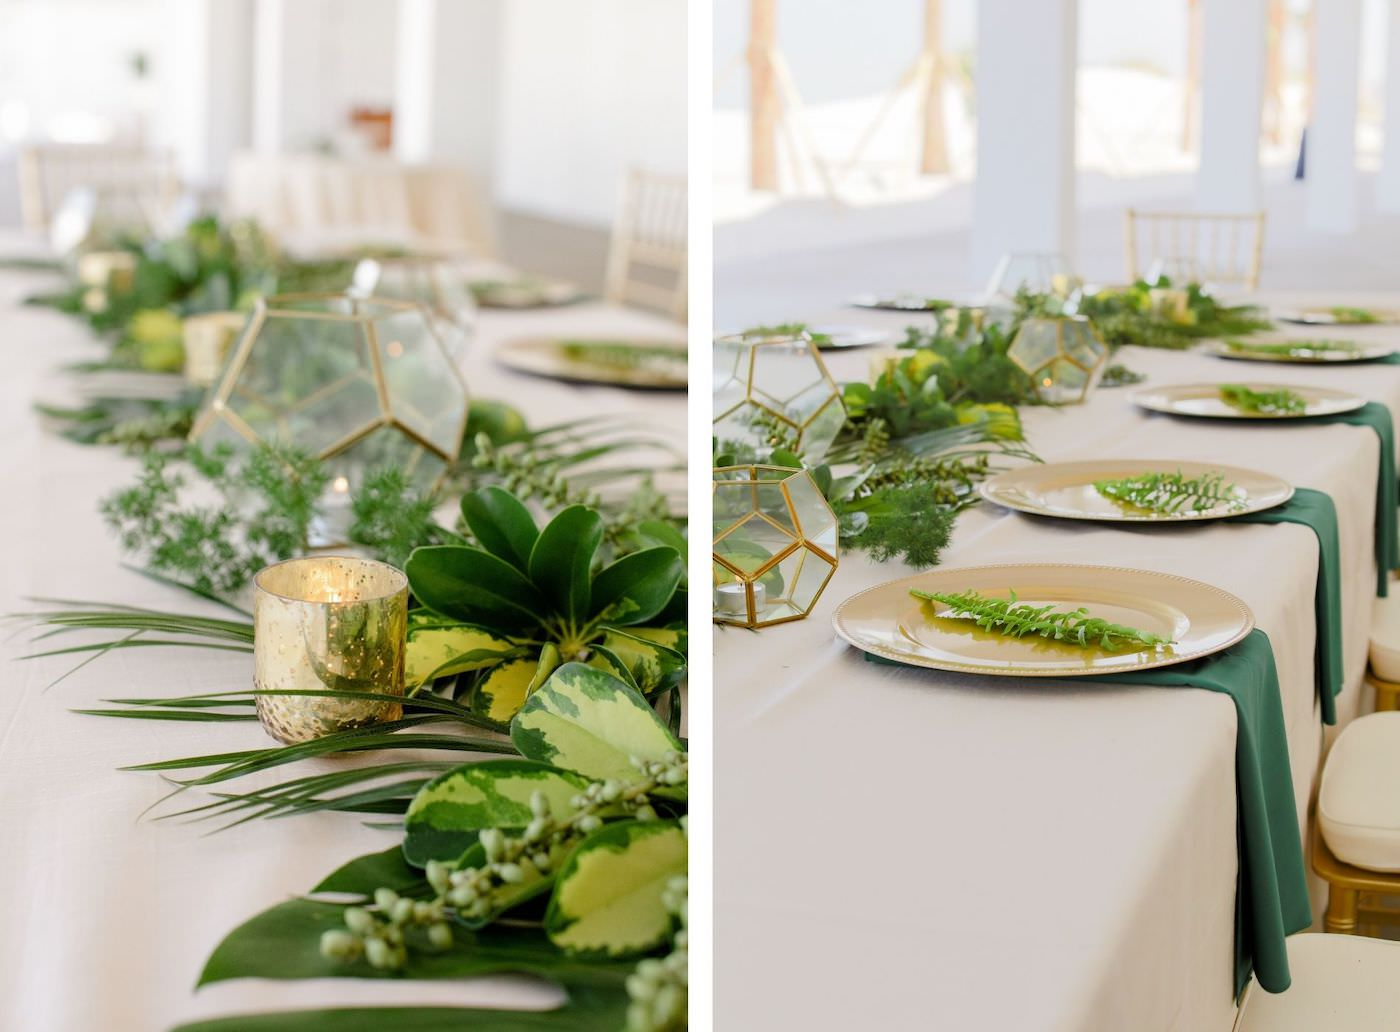 Clearwater Beach Wedding Venue Hilton Clearwater Beach   Modern Tropical Beach Outdoor Wedding Reception Terrace Feasting Table with Champagne Table Linens and Emerald Green Napkins under Gold Charger Plates topped with Ferns   Gold Chiavari Chairs and Tropical Palm Frond Leaf Floral Arrangement Garland and Gold Geometric Candles